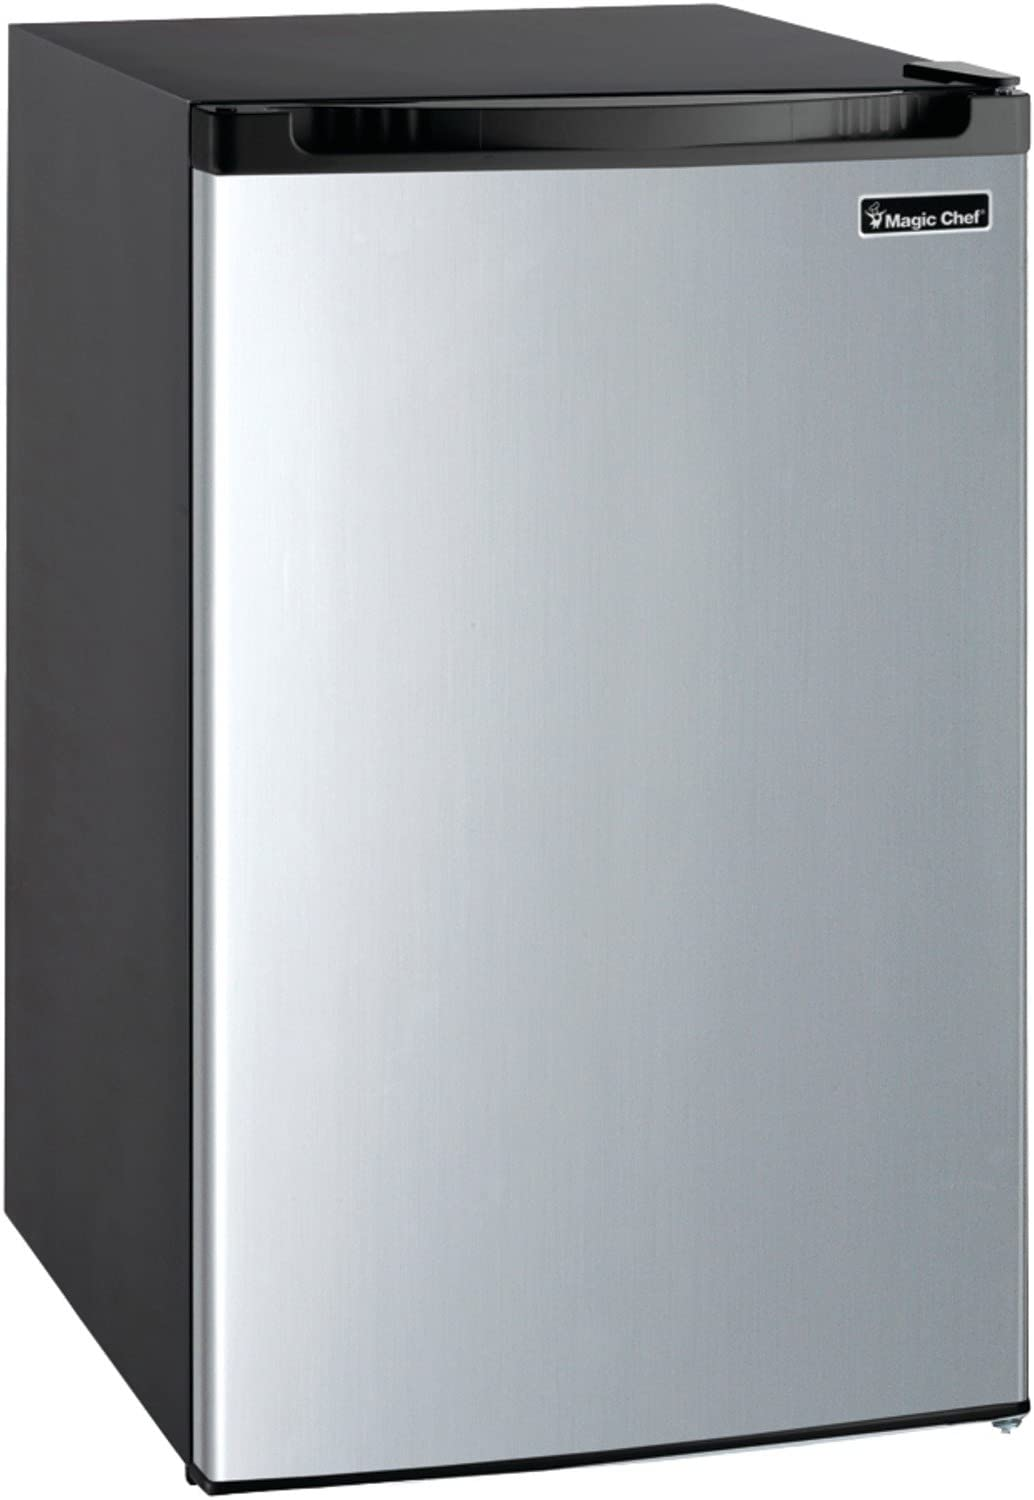 Top 6 Best Compact Refrigerator Freezer Combo [Buying Guide-2021] 6